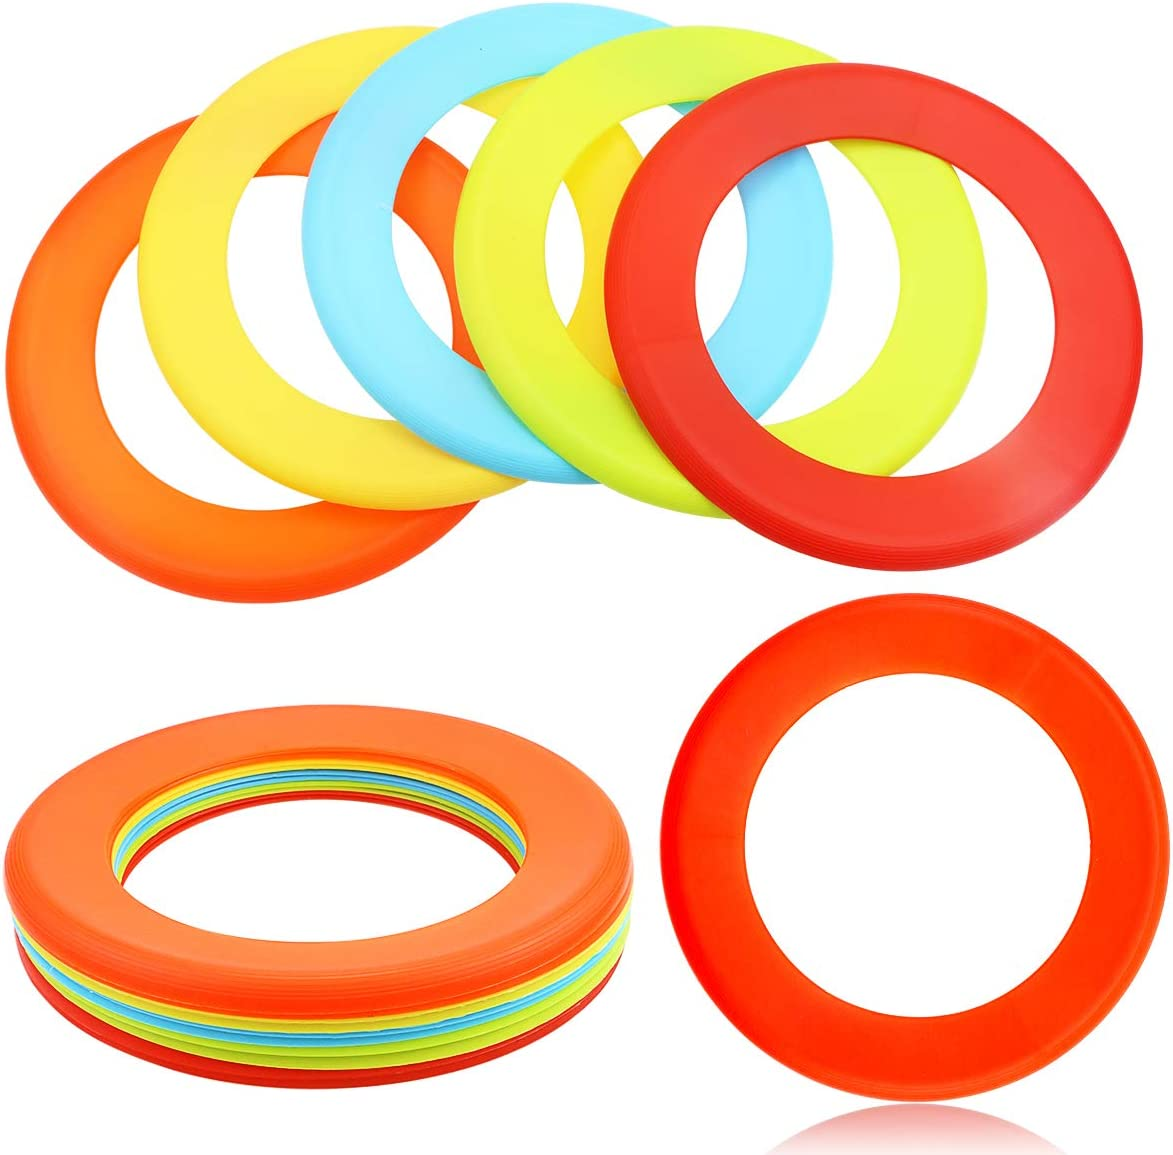 Nidayede 3 Pure Best Silicone Bands Transparent DSS01